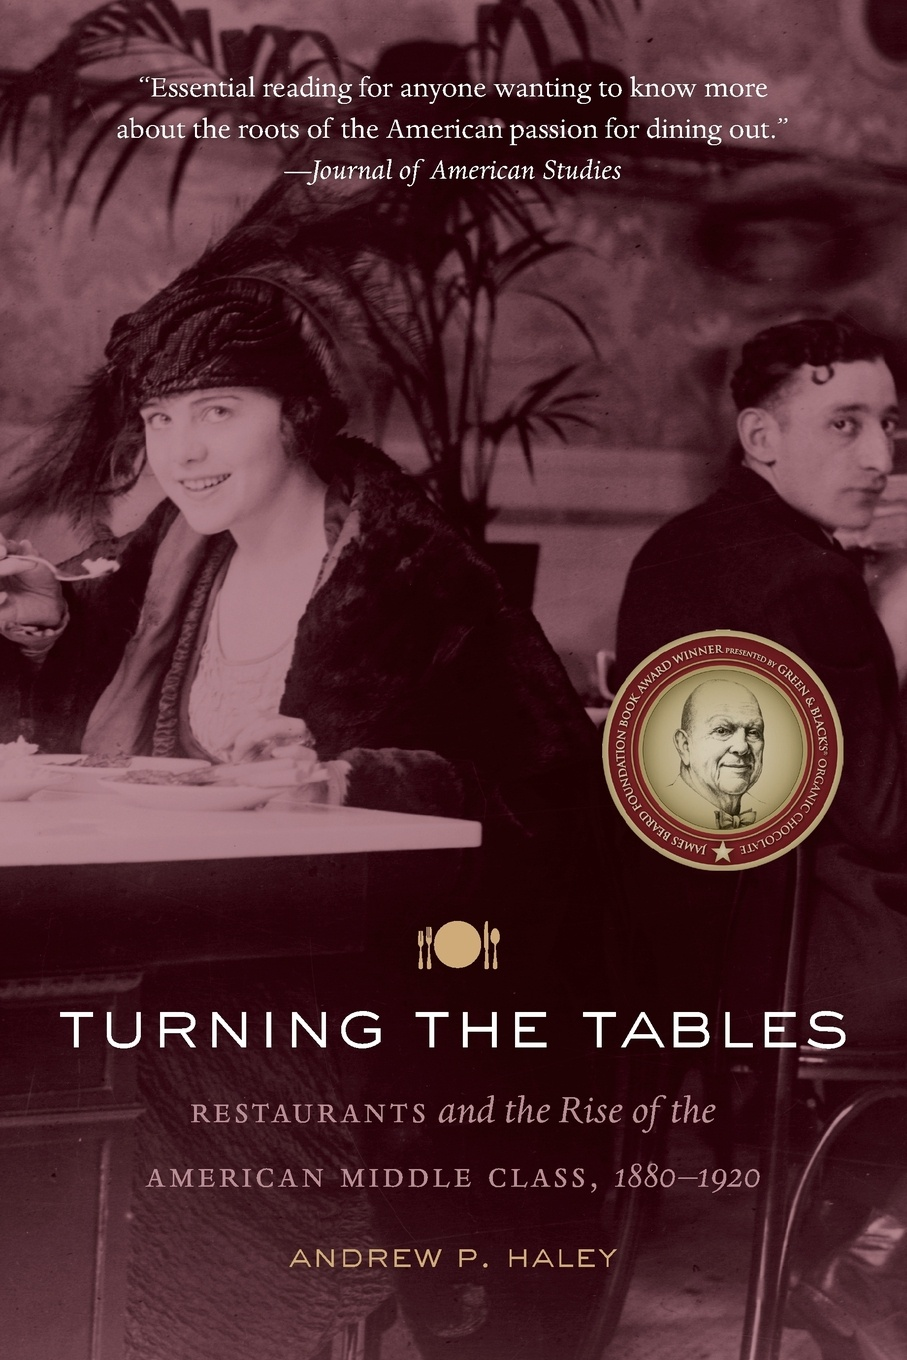 Andrew P. Haley Turning the Tables. Restaurants and the Rise of the American Middle Class, 1880-1920